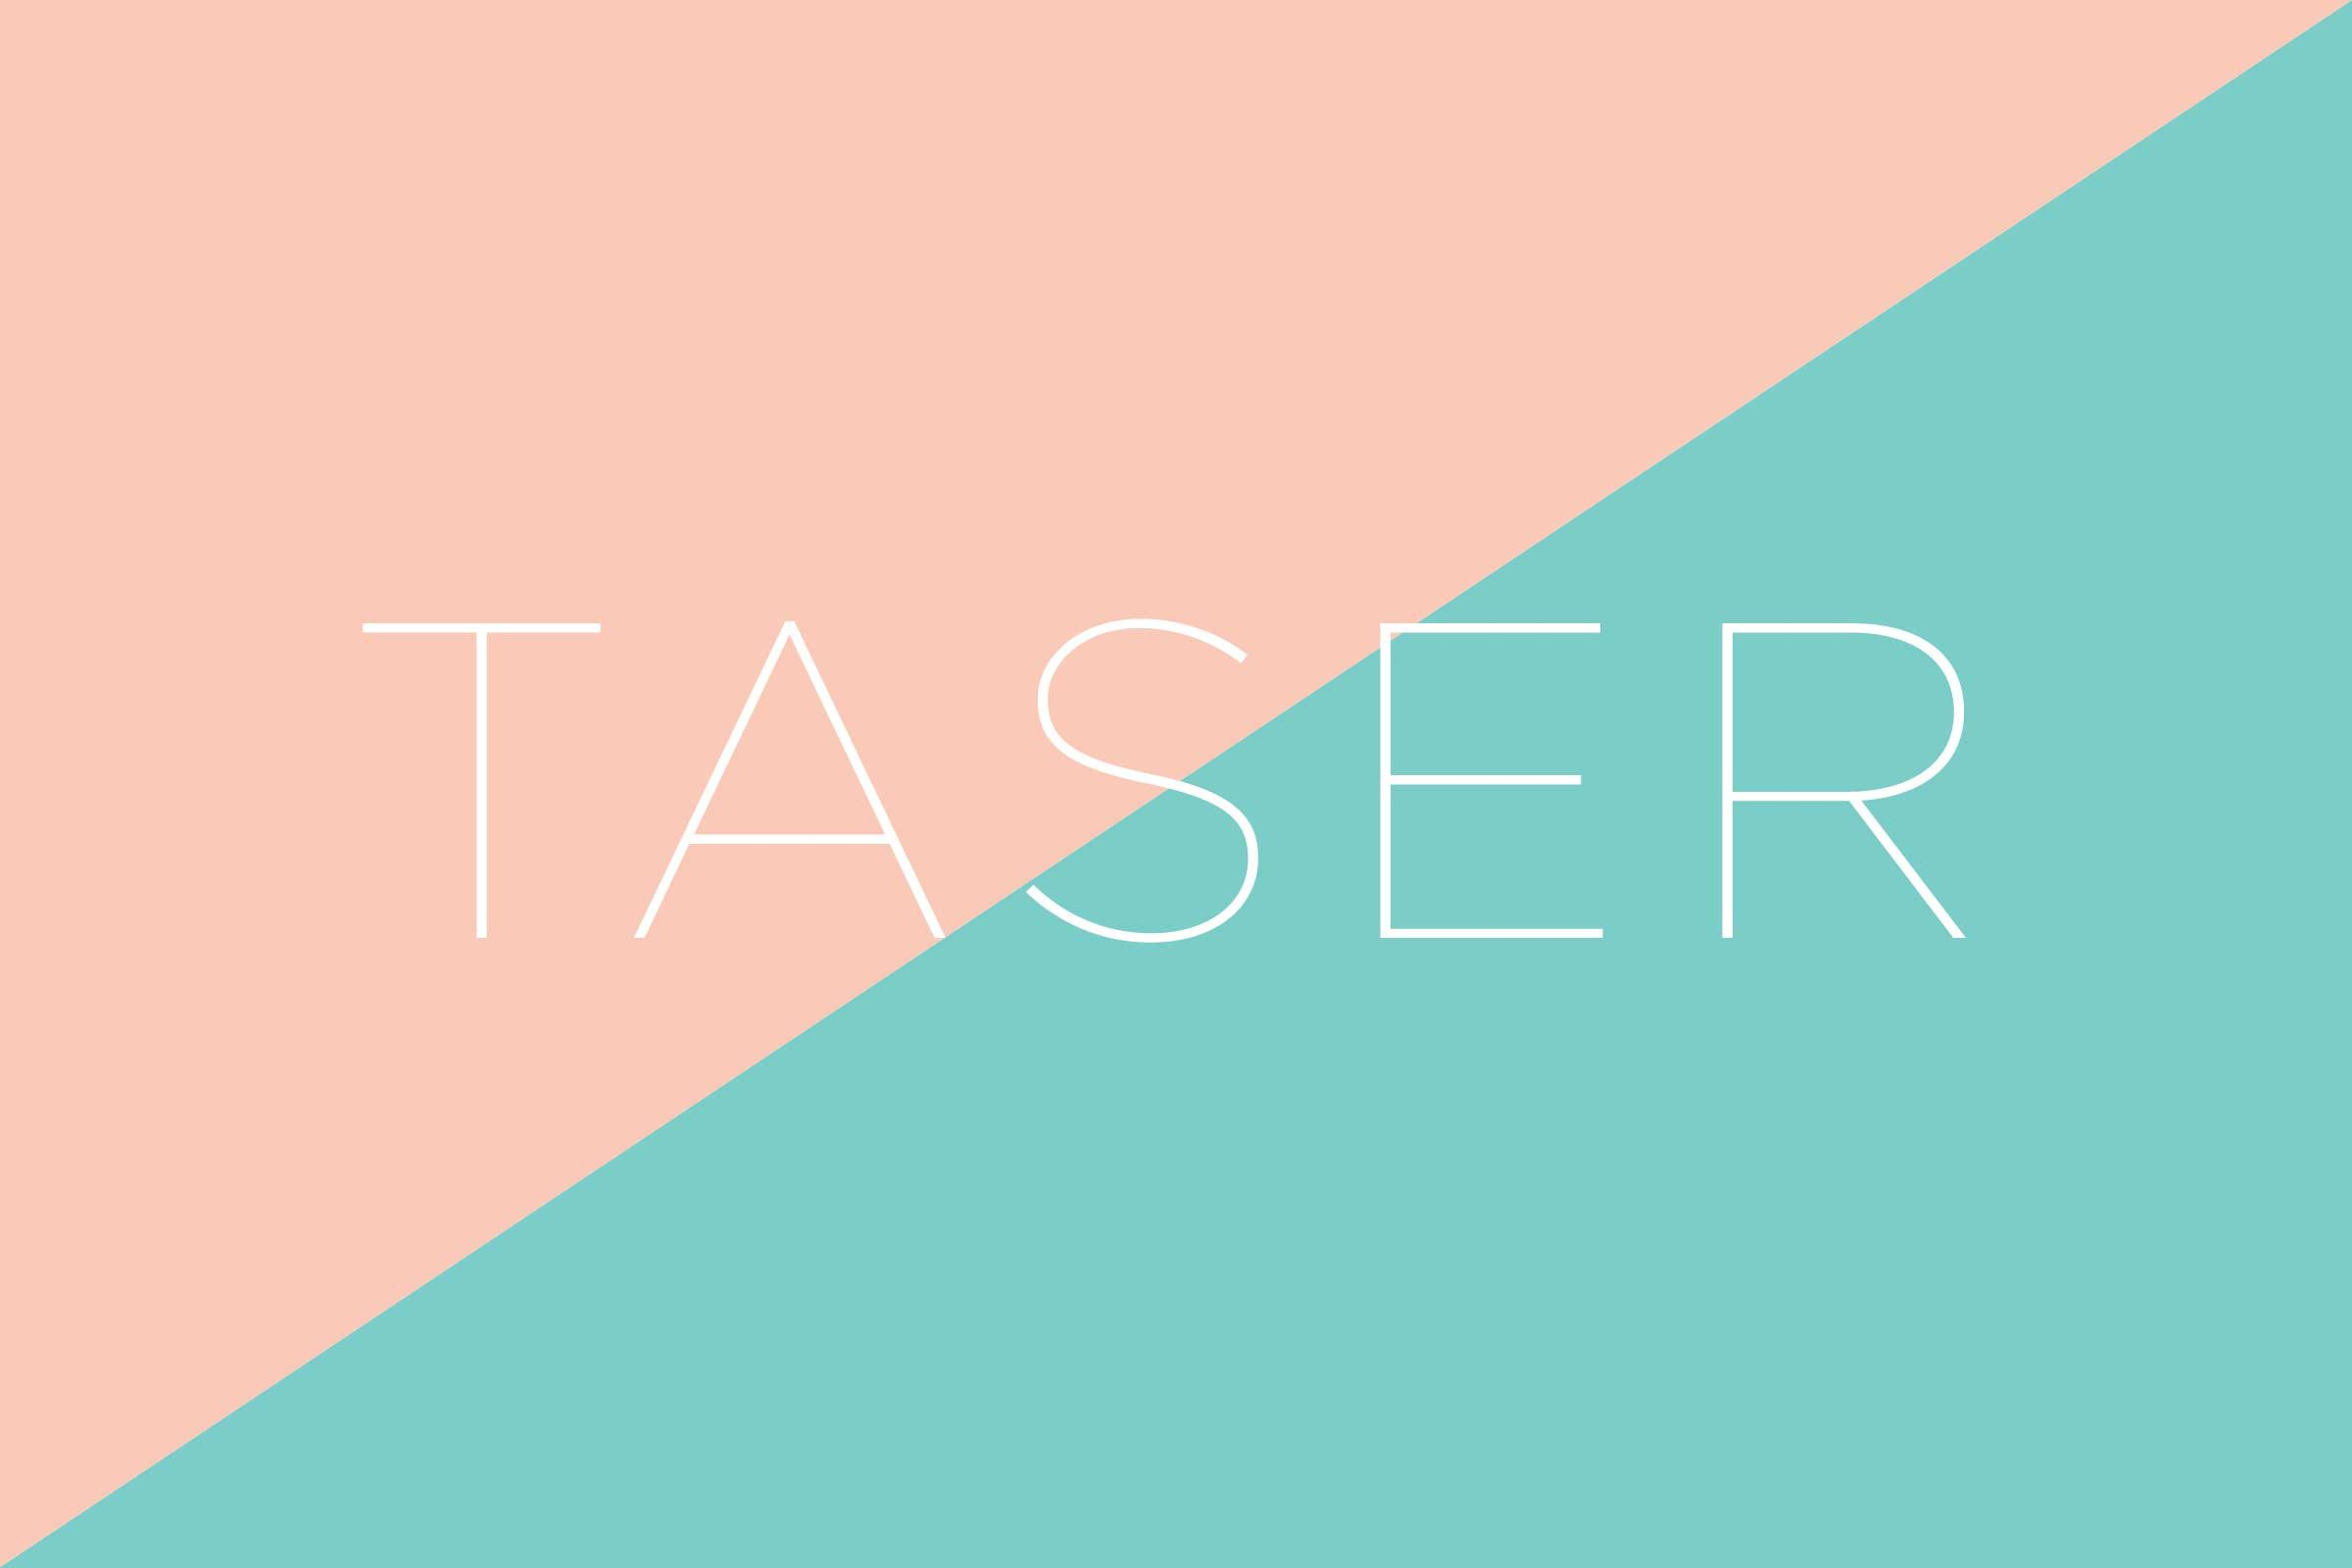 What does TASER stand for?